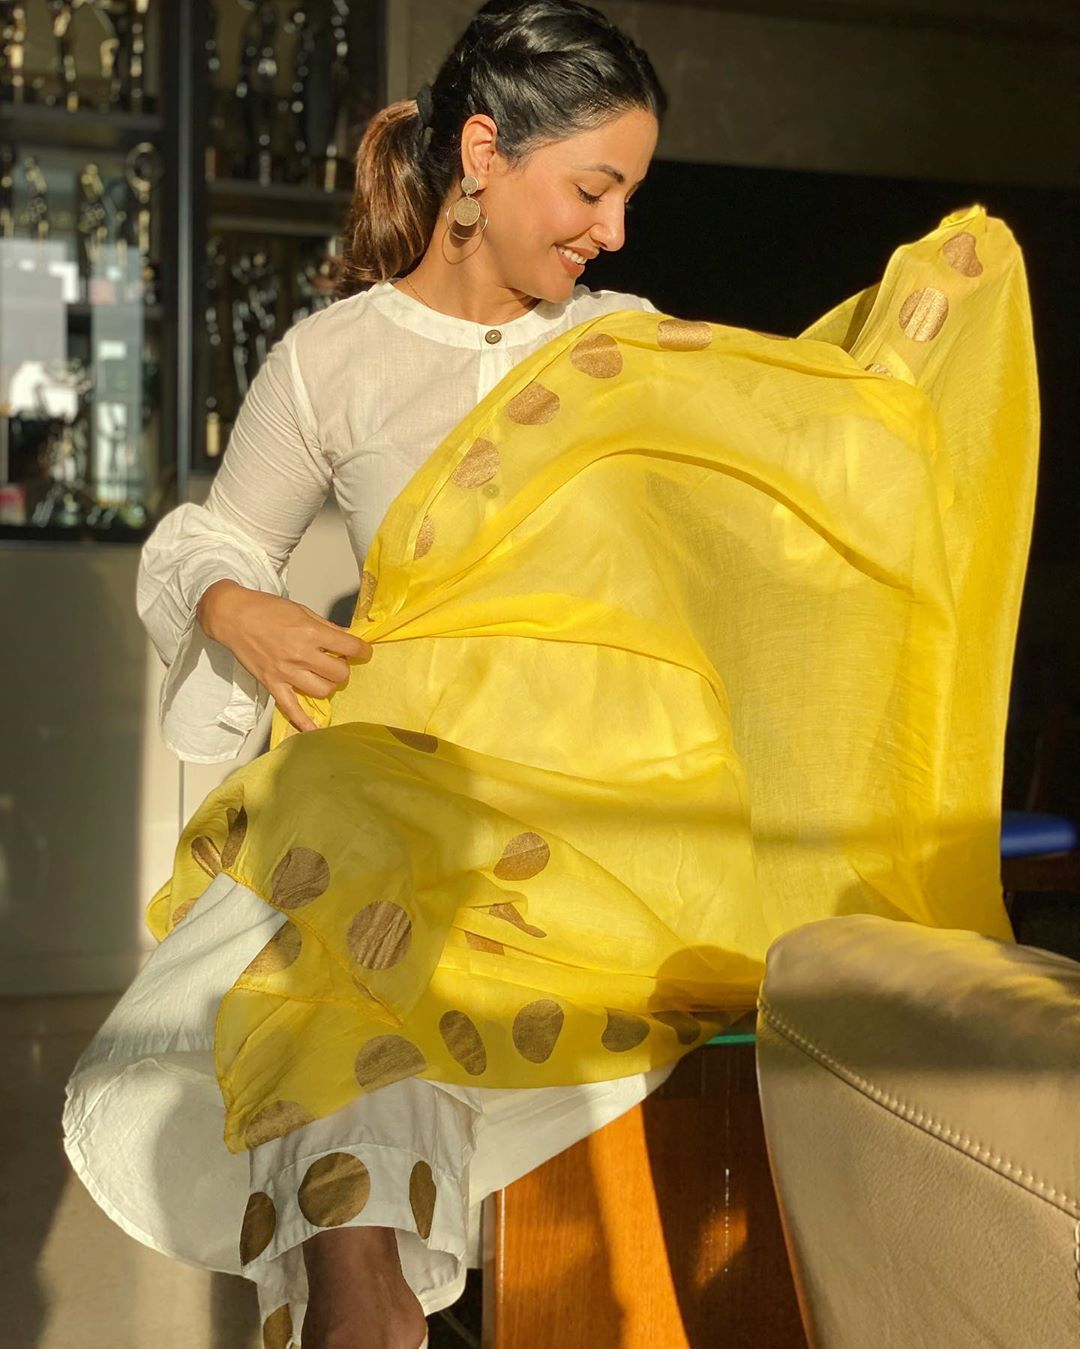 hina-khan-shared-a-few-sun-kissed-pictures-of-her-wearing-white-and-yellow-salwar-kameez